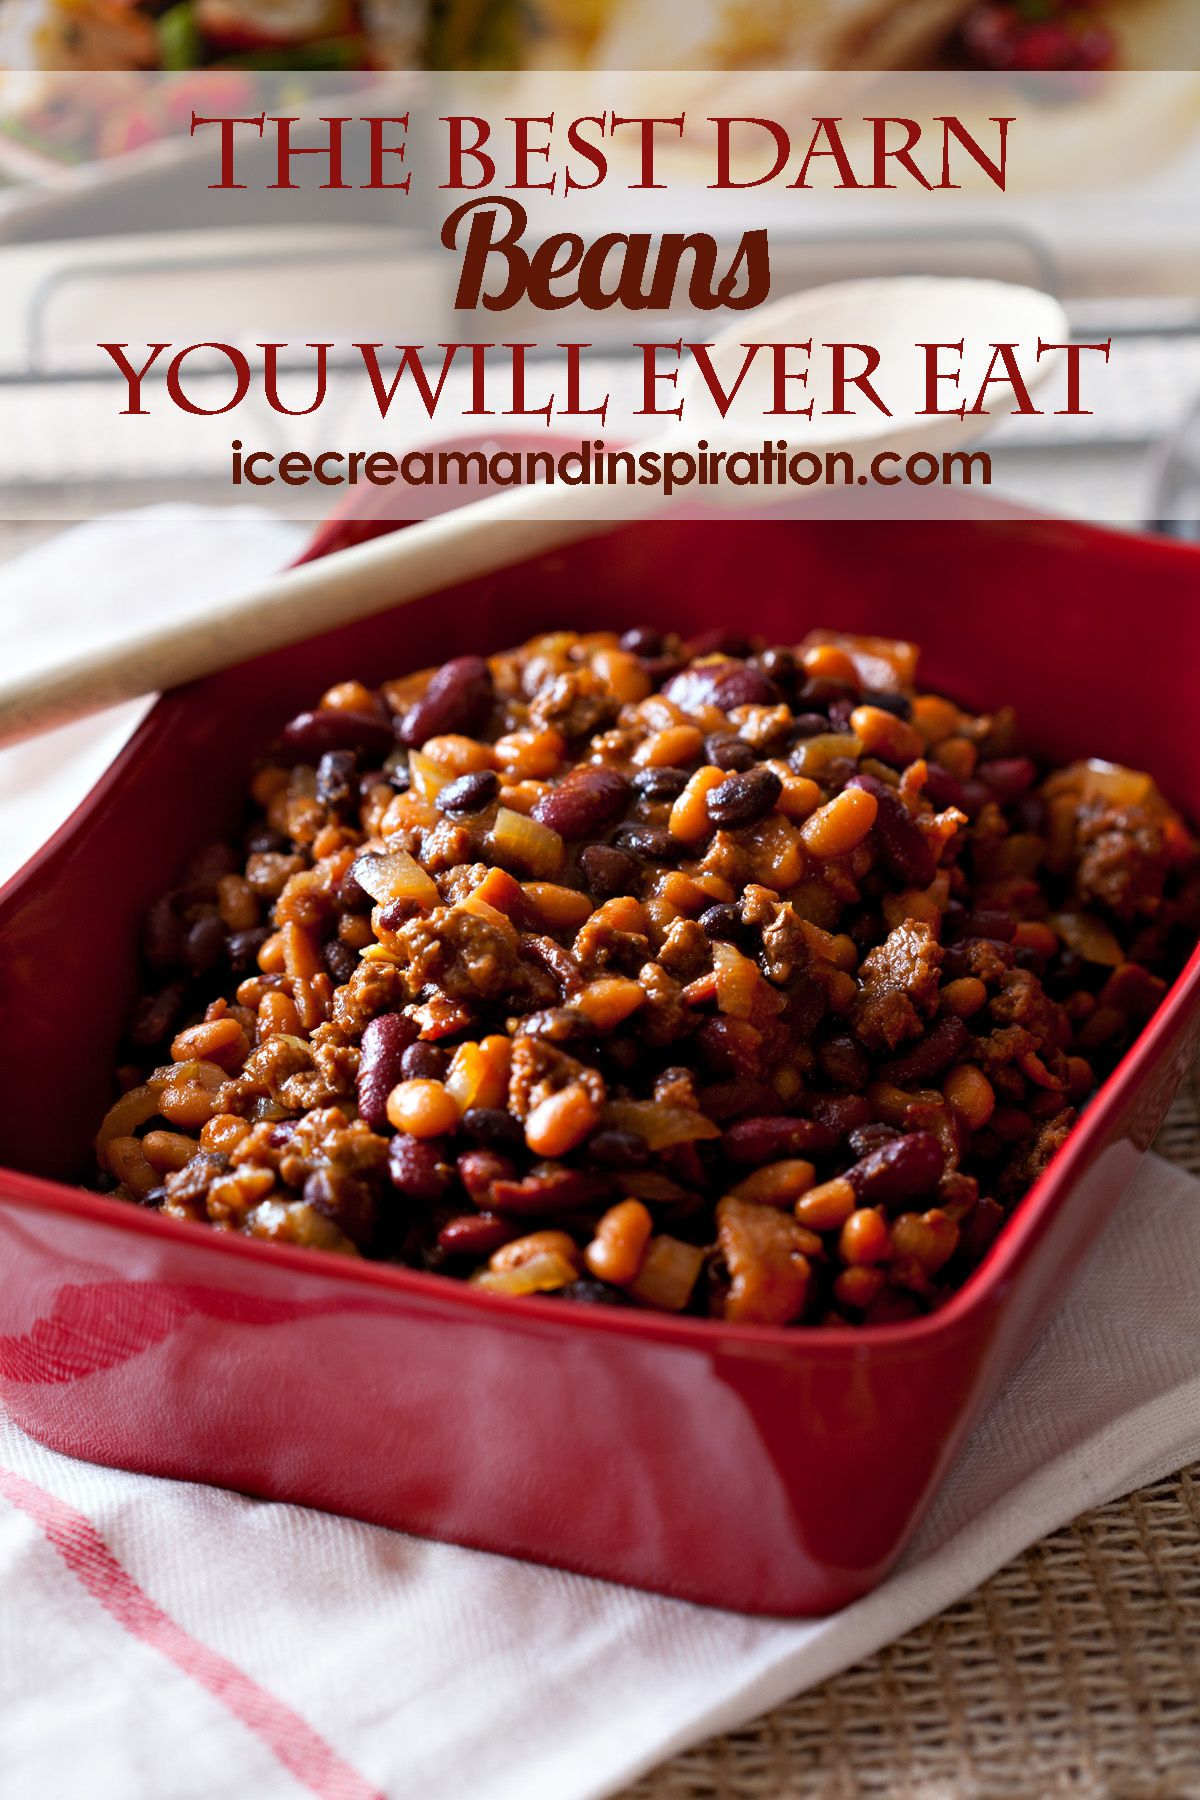 The Best Darn Beans You Will Ever Eat Beautiful Life And Home Recipe Baked Bean Recipes Bean Recipes Best Baked Beans